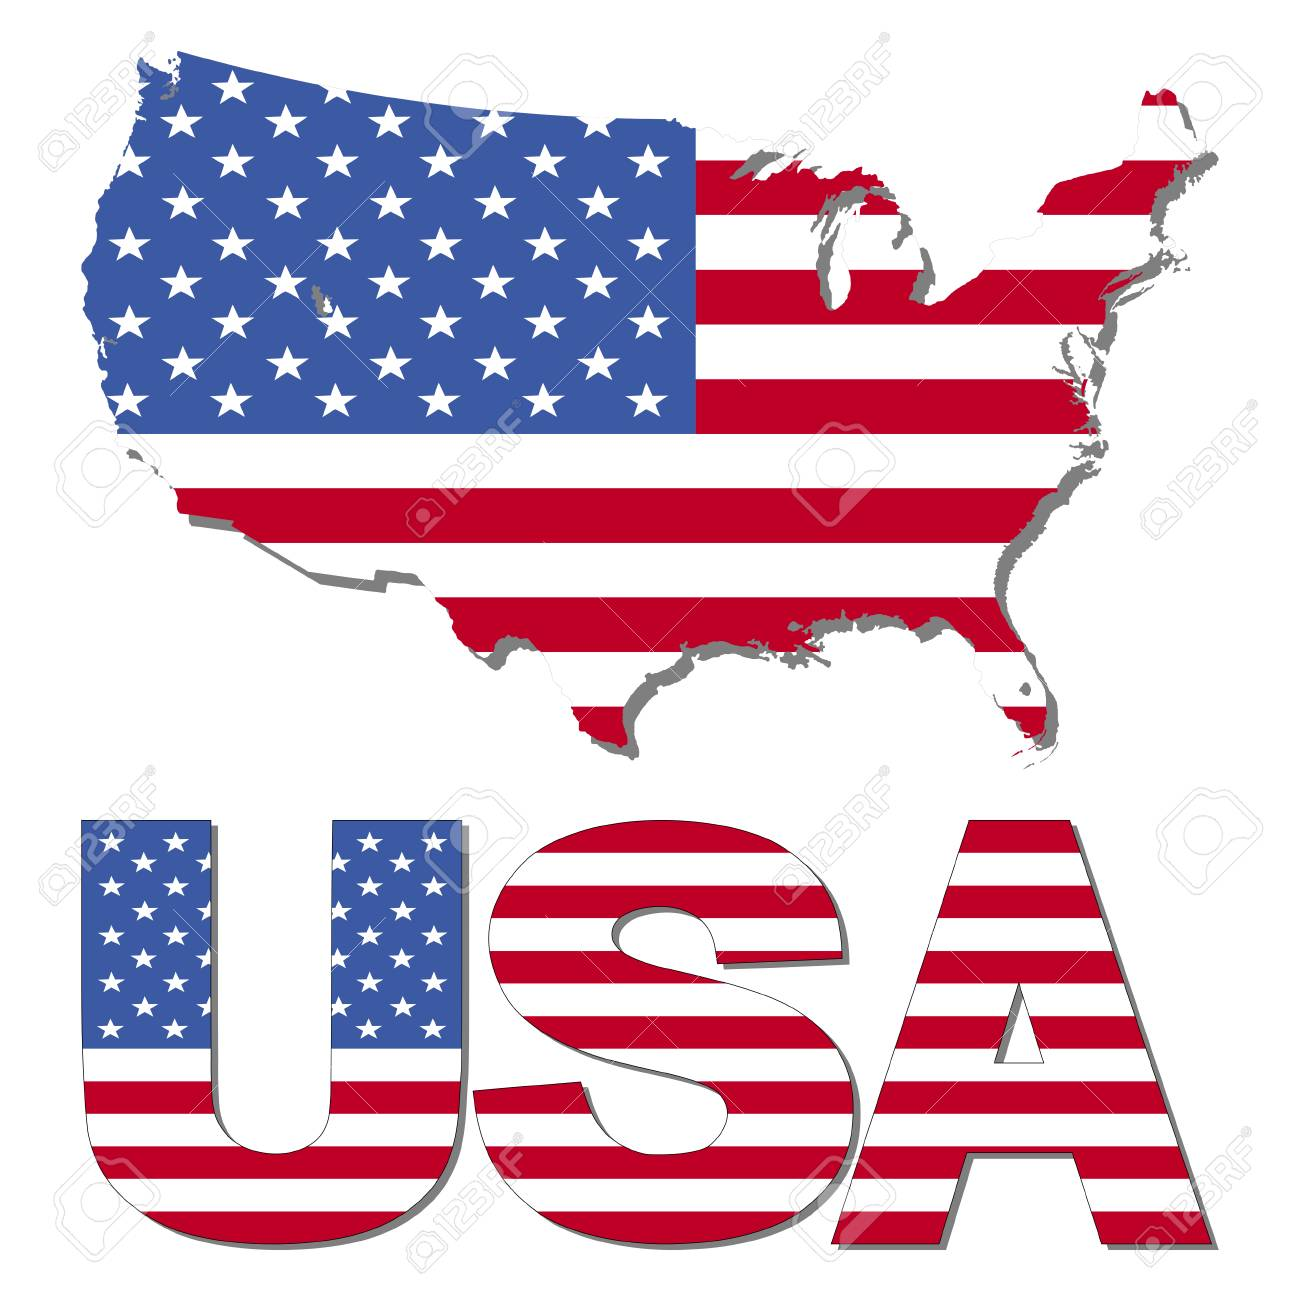 USA Map Flag And Text Illustration Stock Photo, Picture And Royalty ...